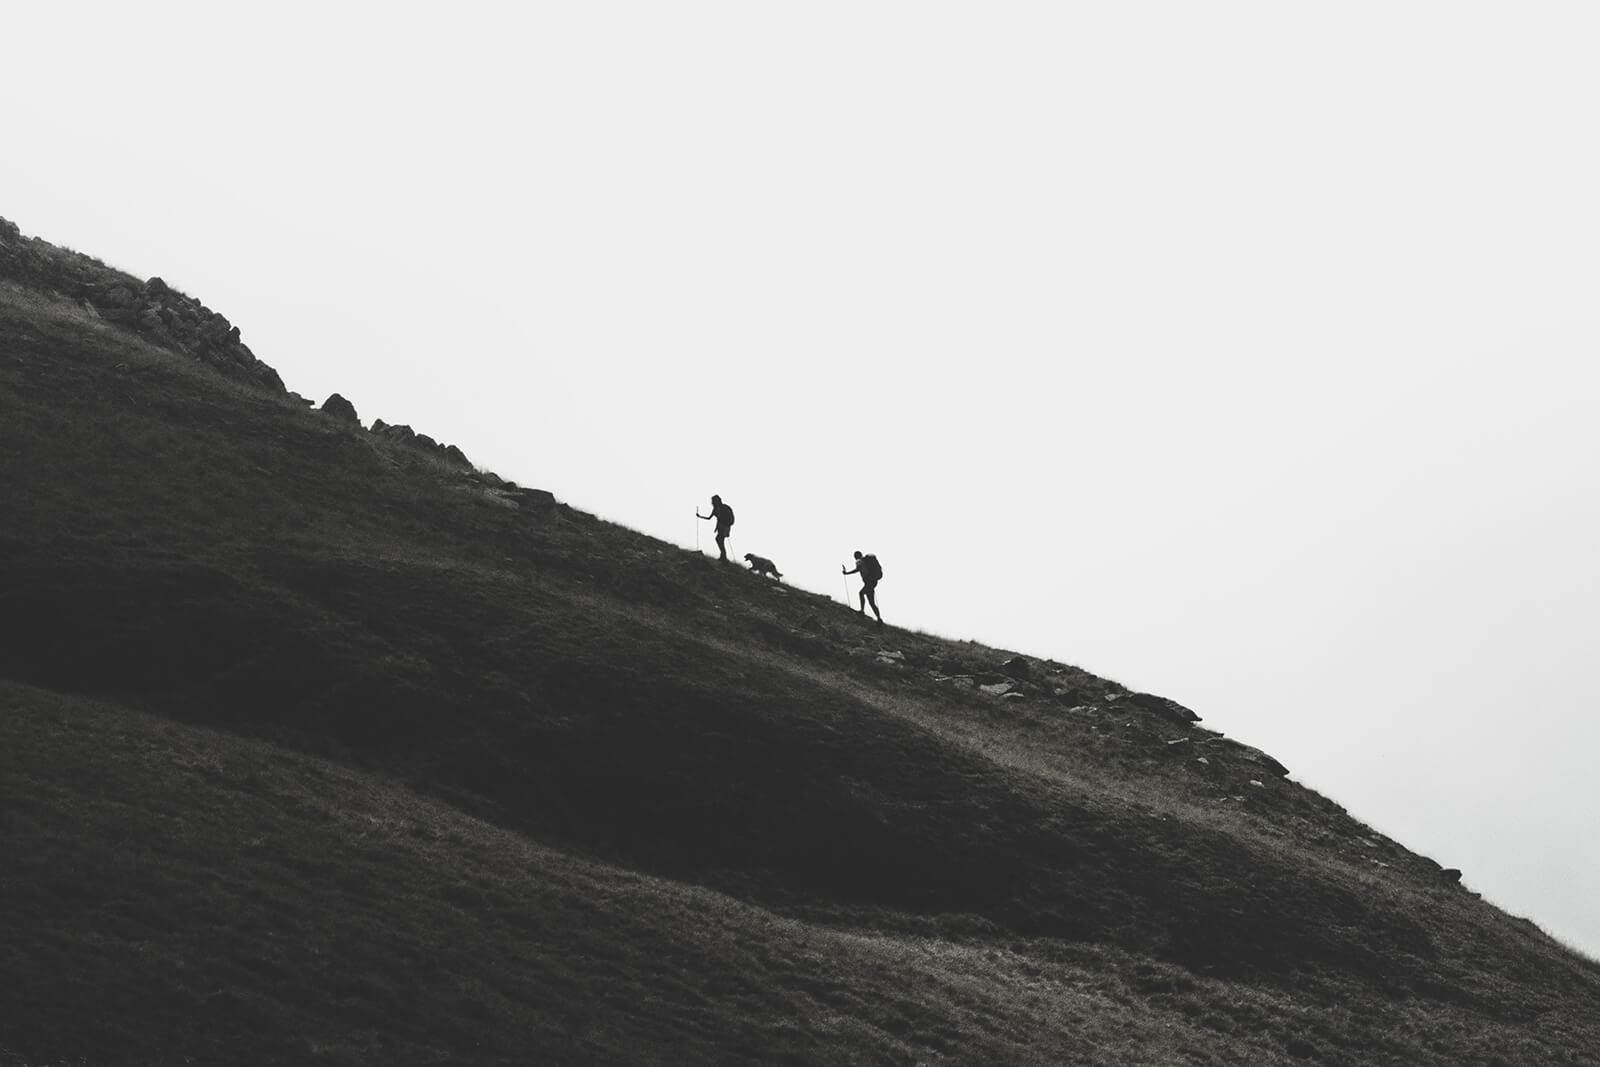 backpacking with dogs, Black and White Silhouette of two hikers and a dog ascending a steep hill or mountain